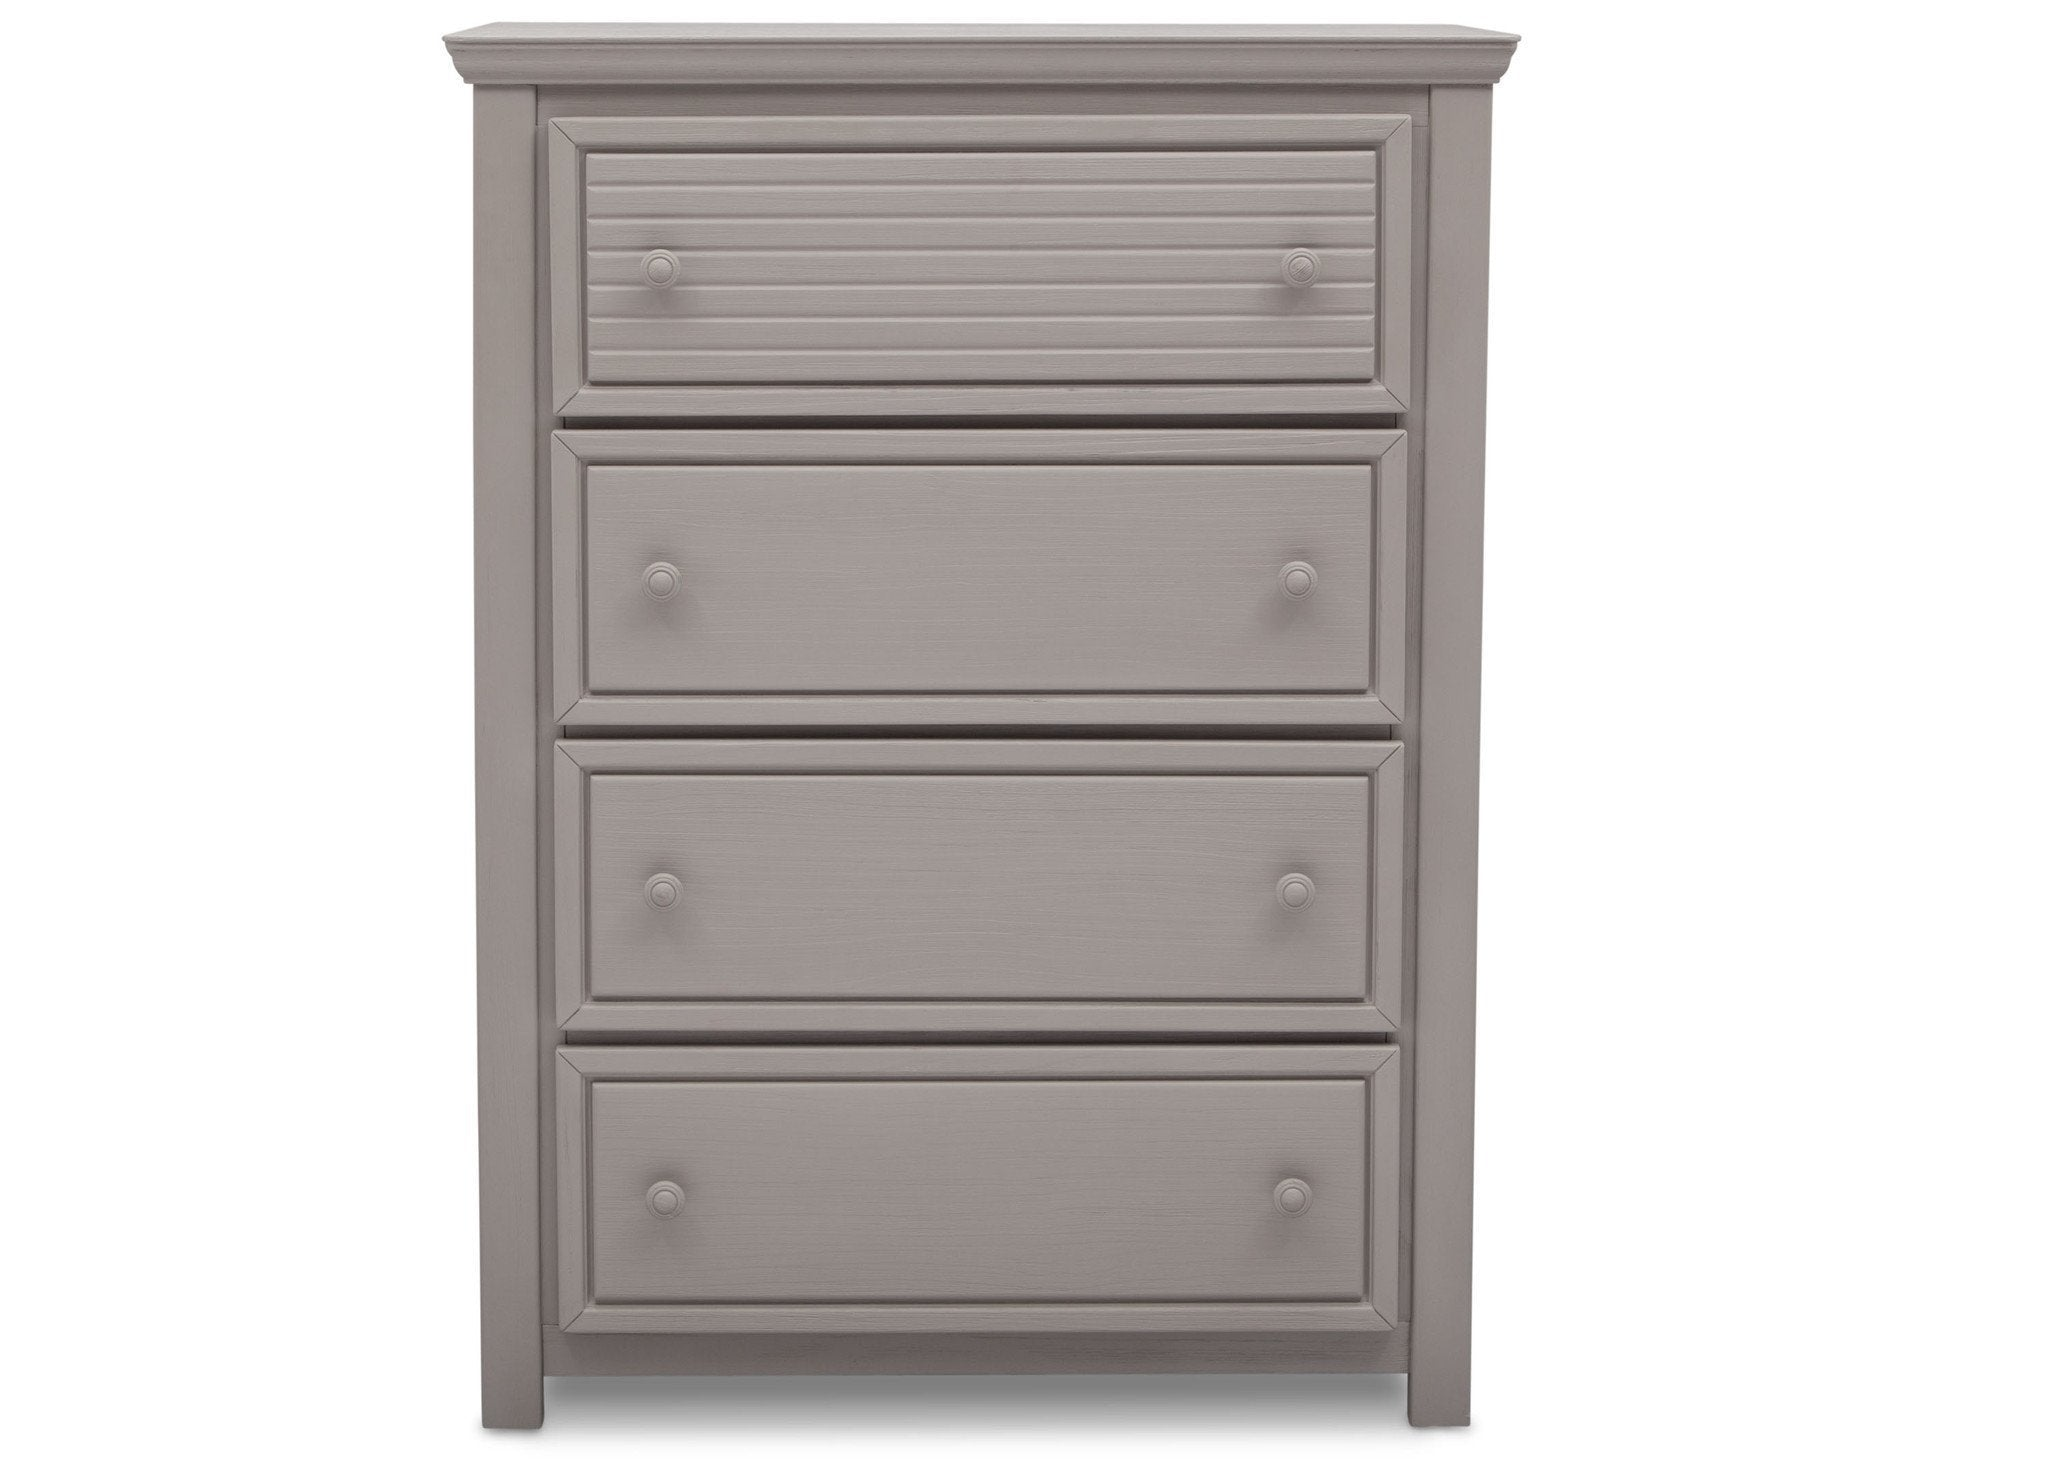 Simmons Kids Rustic Haze (940) Oakmont 4 Drawer Chest Front View b1b